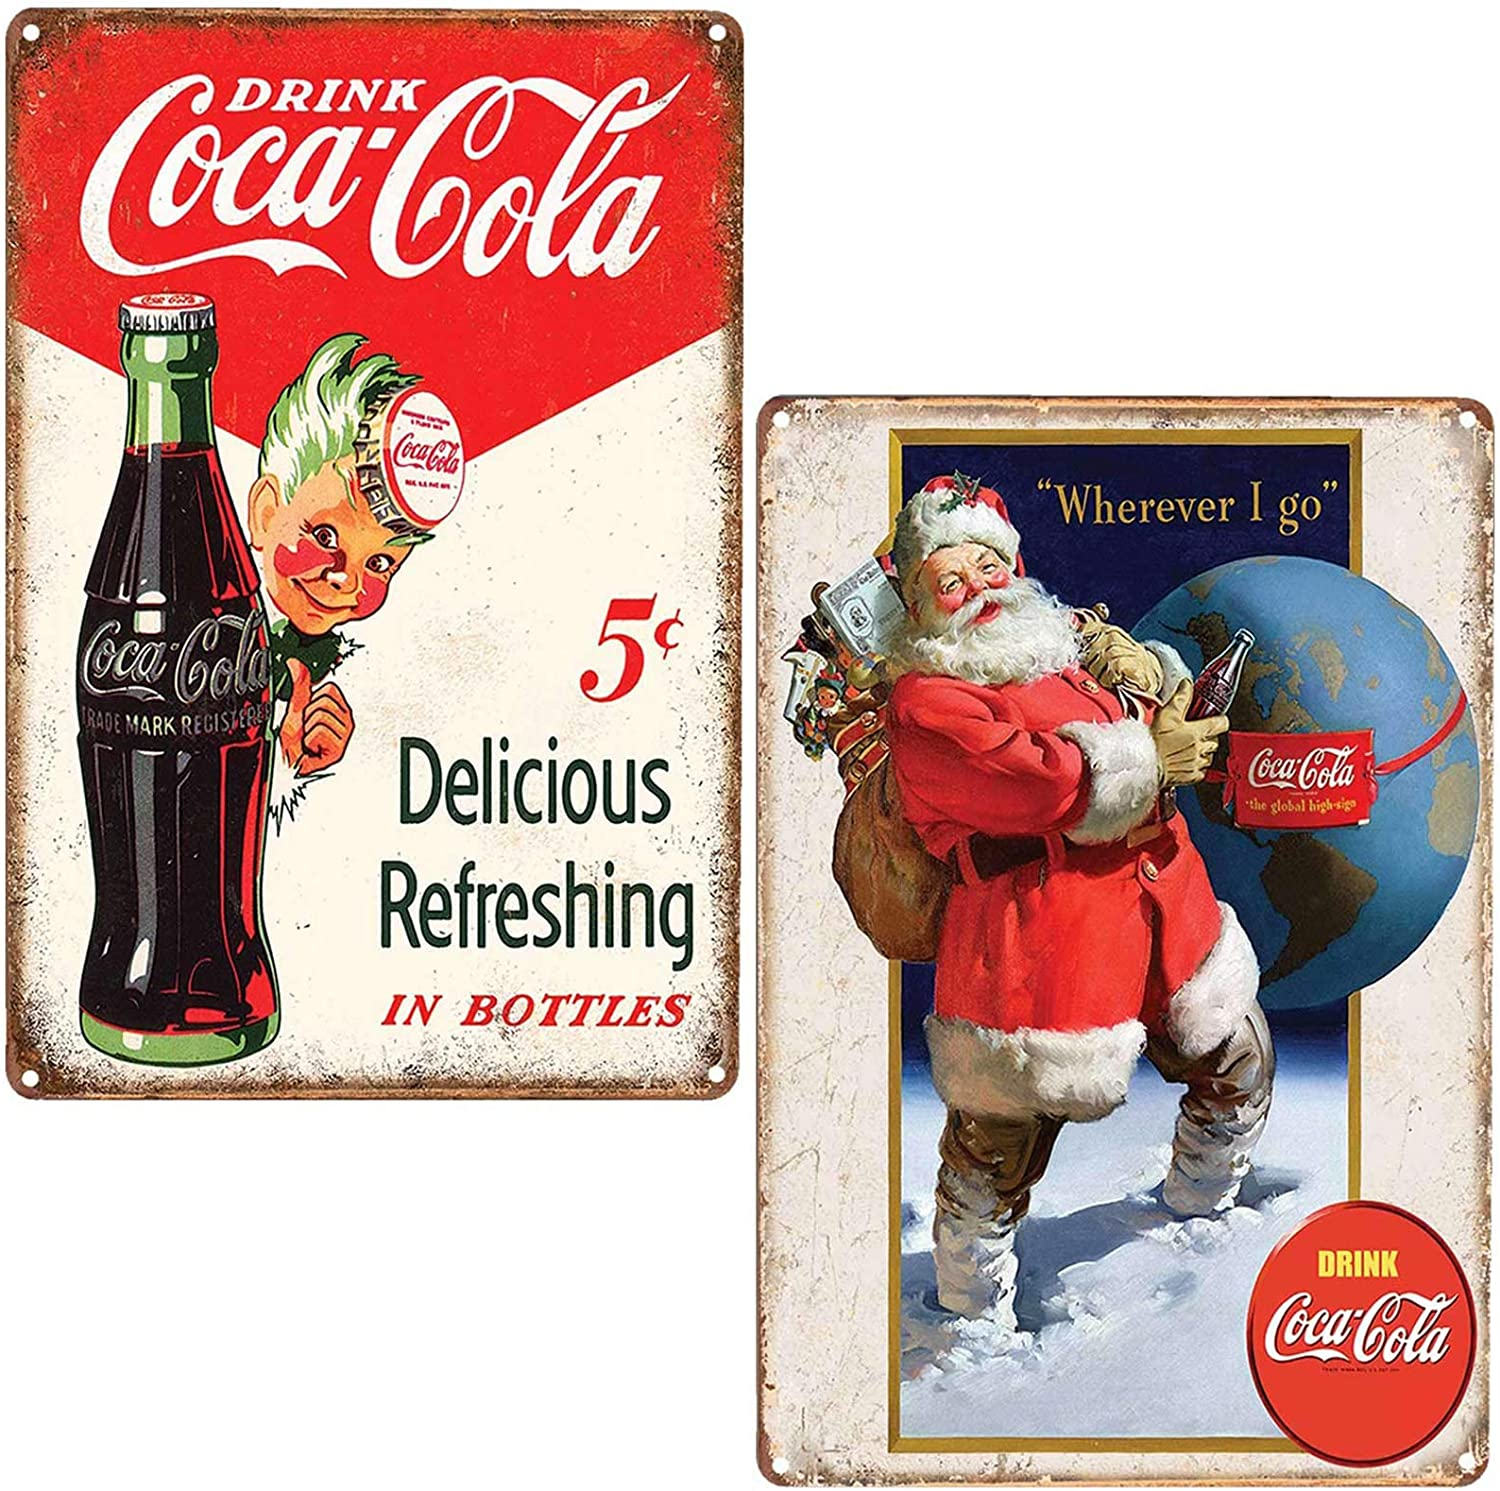 FSTIKO Vintage Coca Cola Tin Signs, Drink Coca Cola 5 Cents Delicious Refreshing in Bottles & Santa Claus Drink Coke Retro Decor for Men Cave Home Wall Plaque Poster Cafe Bar Pub 8X12Inch 2Pcs